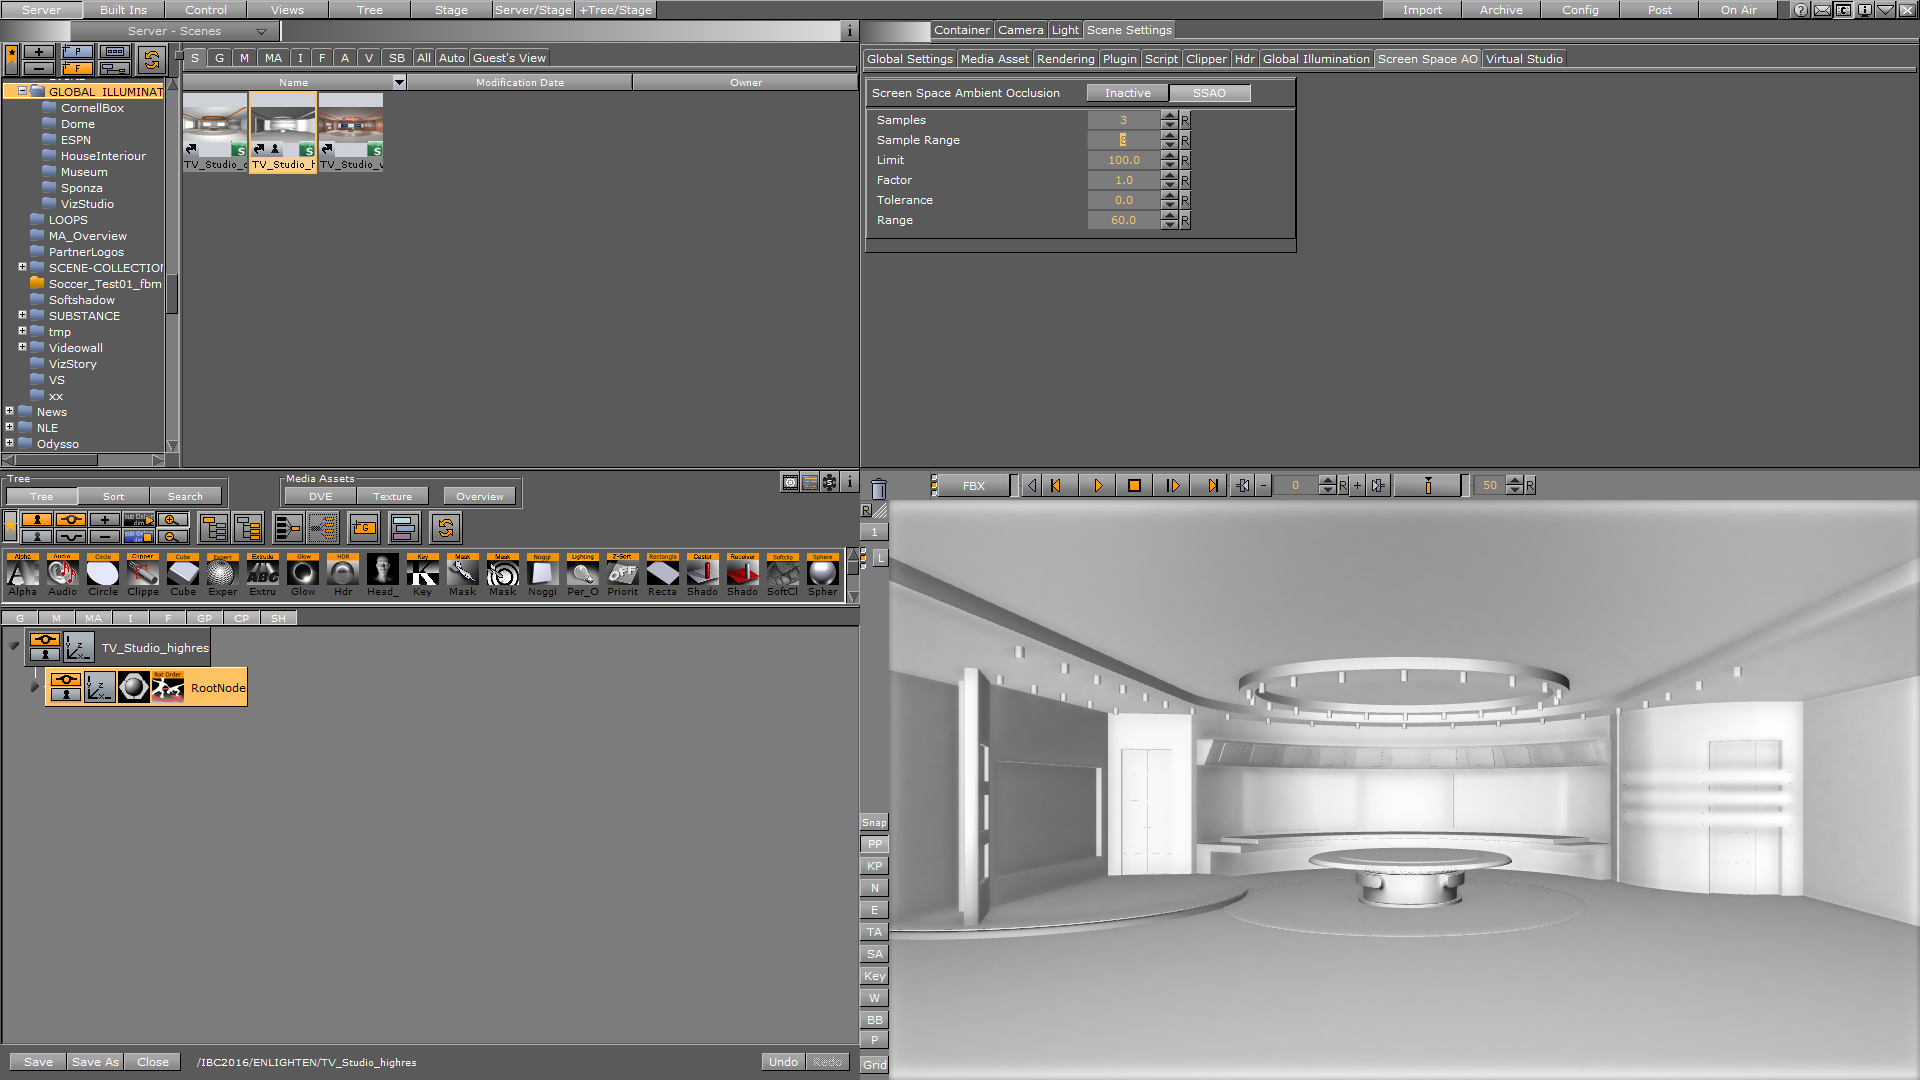 no application controlled ambient occlusion